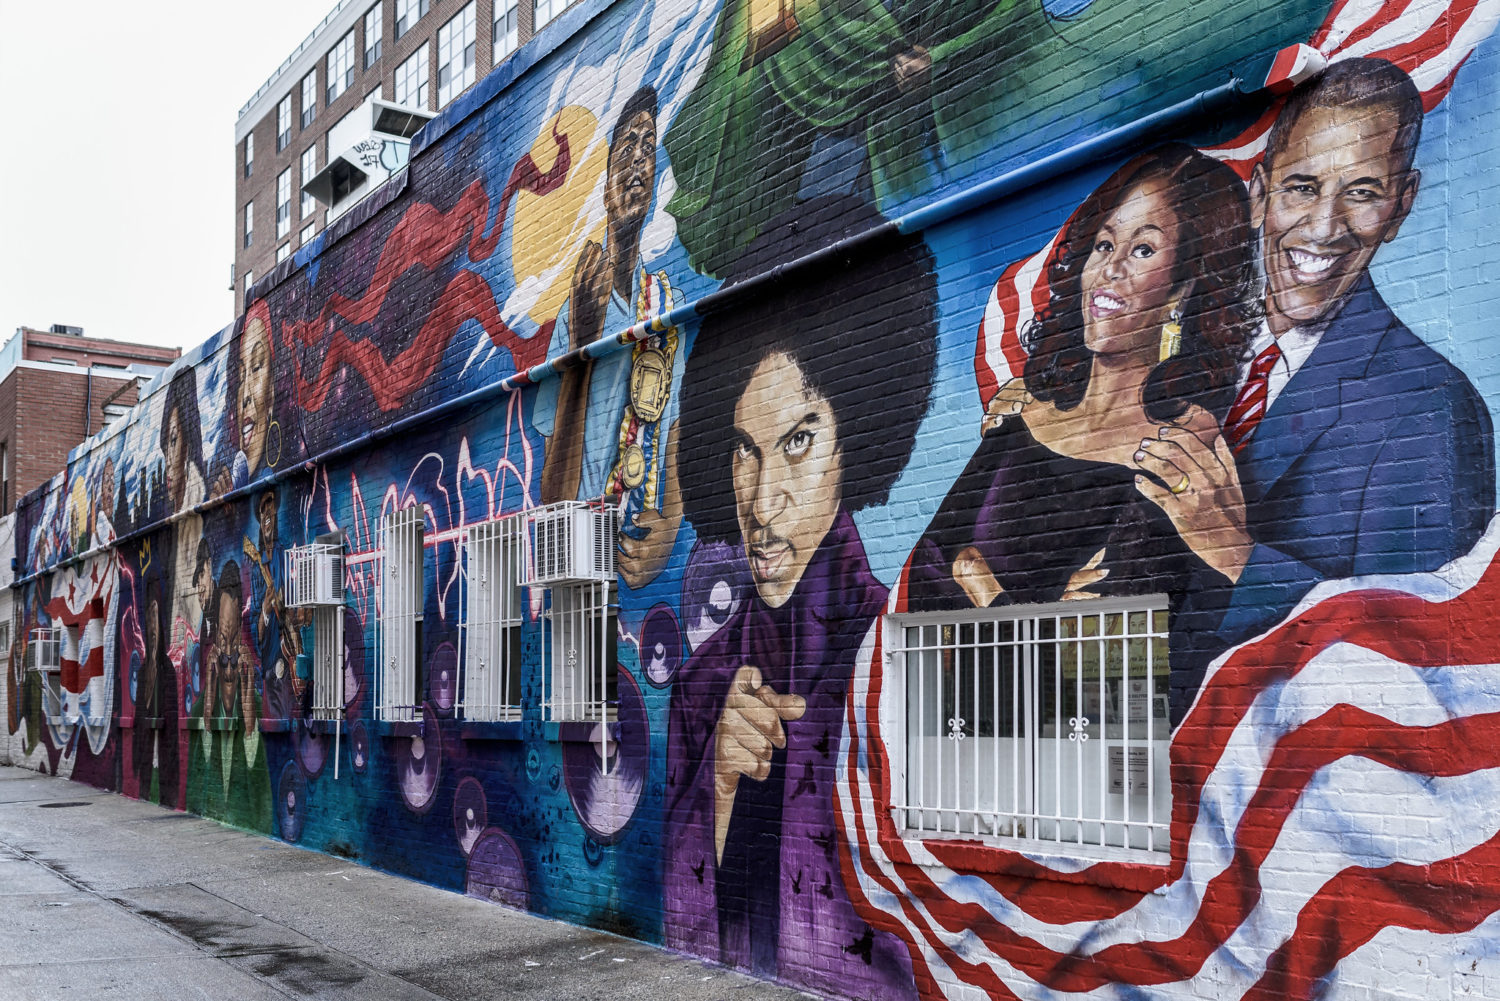 Map: D.C. Is Getting Six More Murals In Five Different Wards ...  Th Street Dc Map on dc future land use map, dc streetcar map, dc ghetto streets, dc race map, southeast dc map, city center dc map, dc truck route map, dc park map, dc building map, dc beltway map, dc underground map, dc loop map, dc topo map, dc bicycle map, dc hill map, dc food map, dc zip map, dc postal code map, dc road map, dc suburb map,